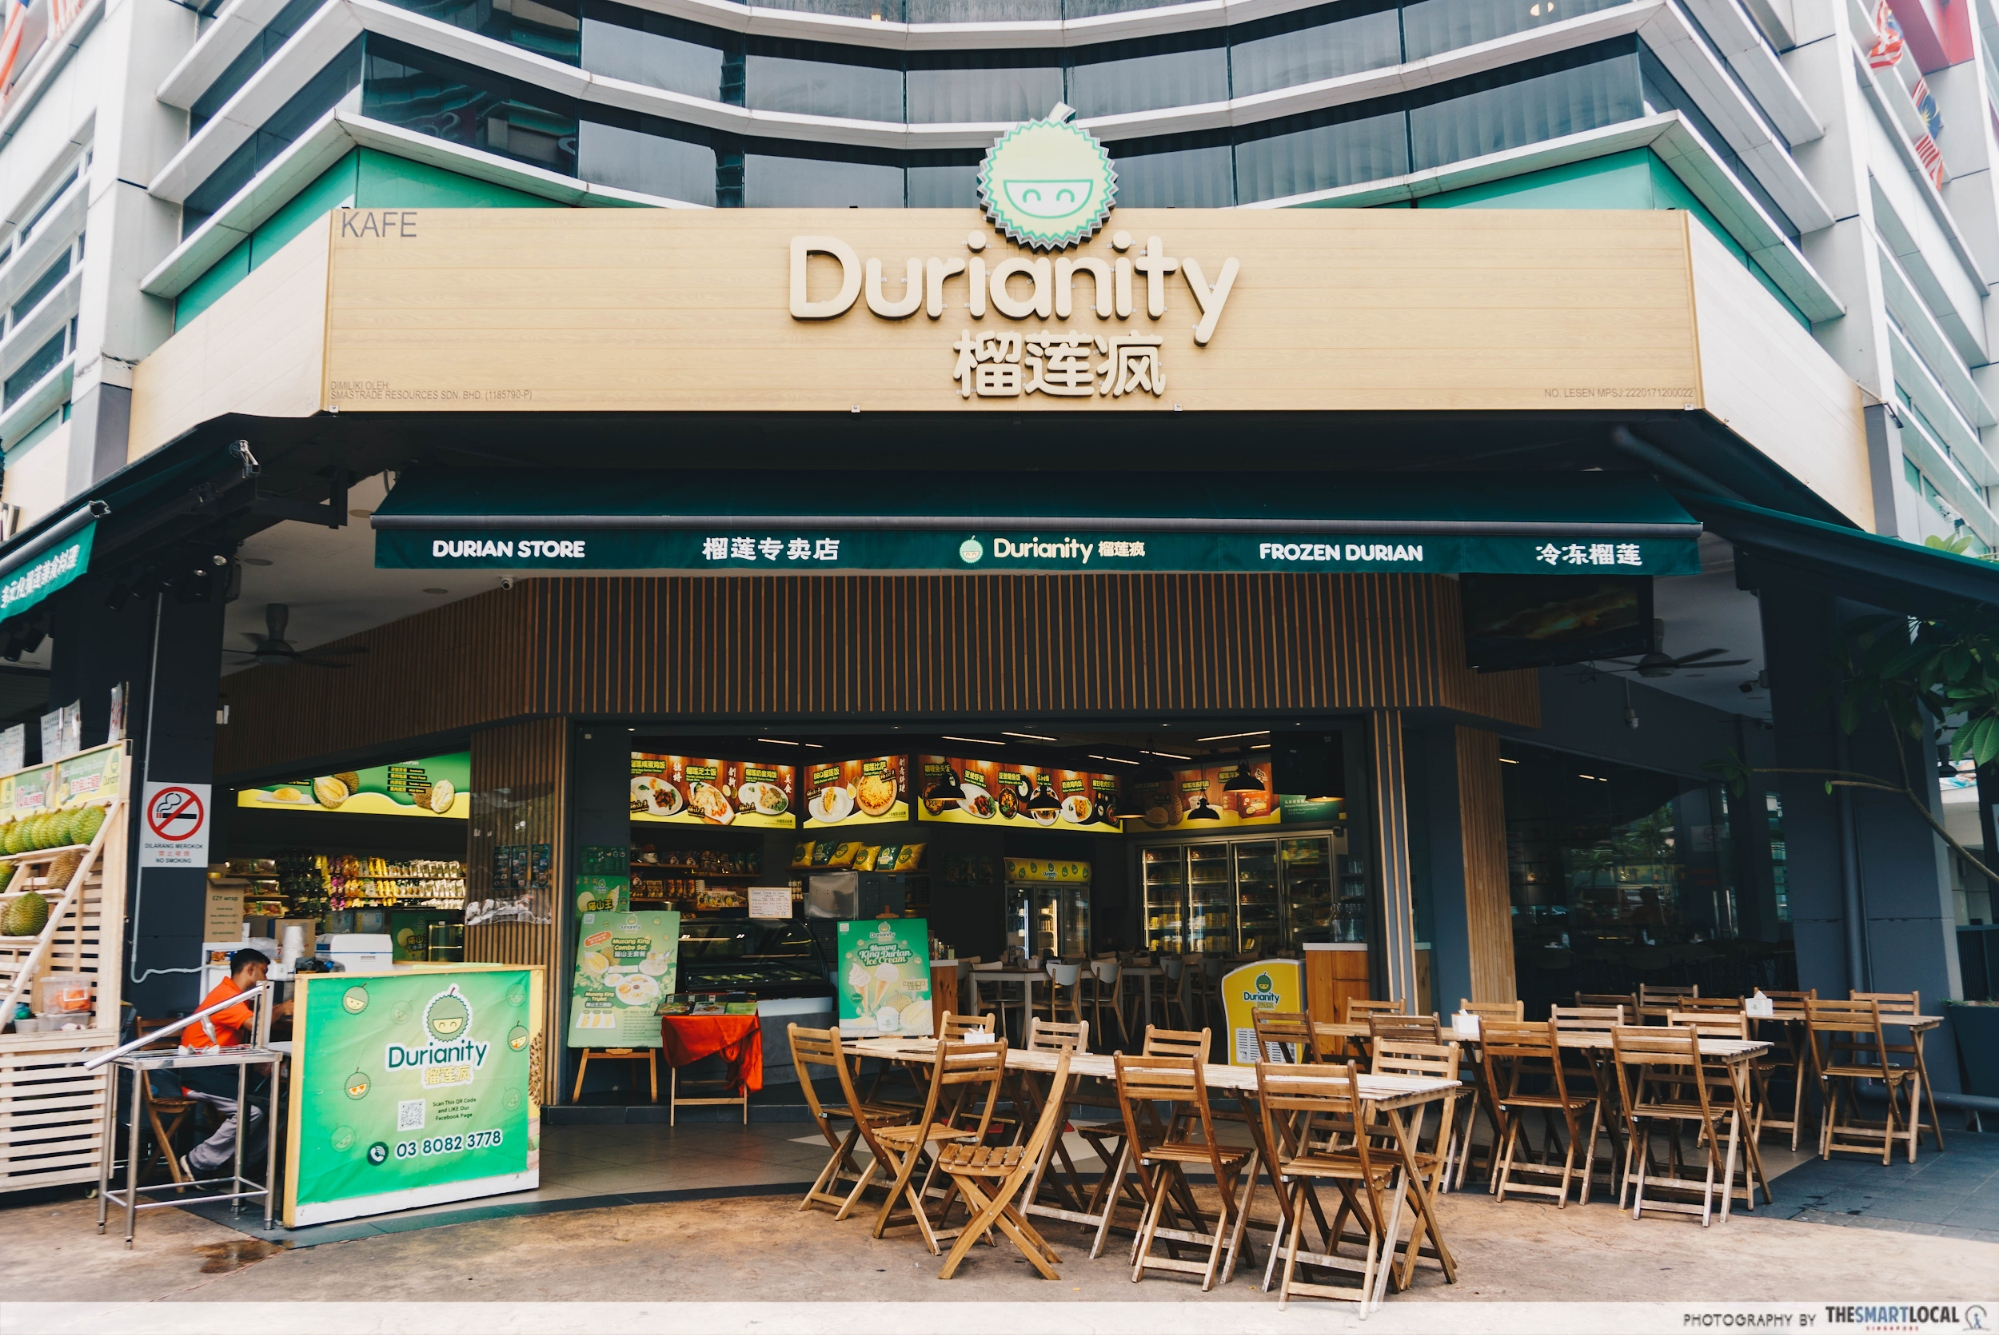 Durianity in Puchong